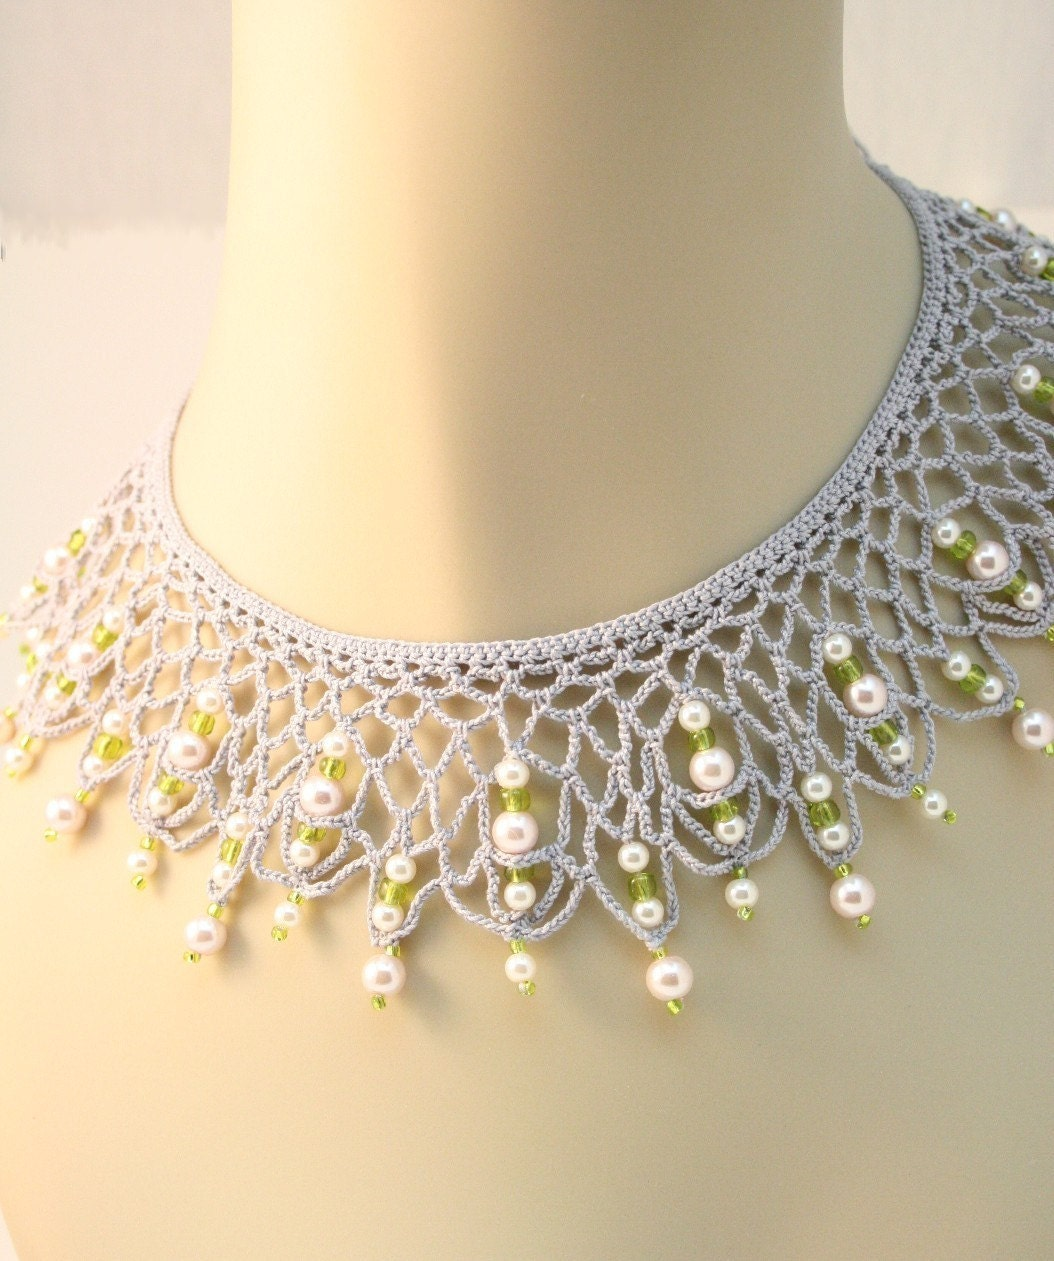 Crochet and Silver Bead Necklace